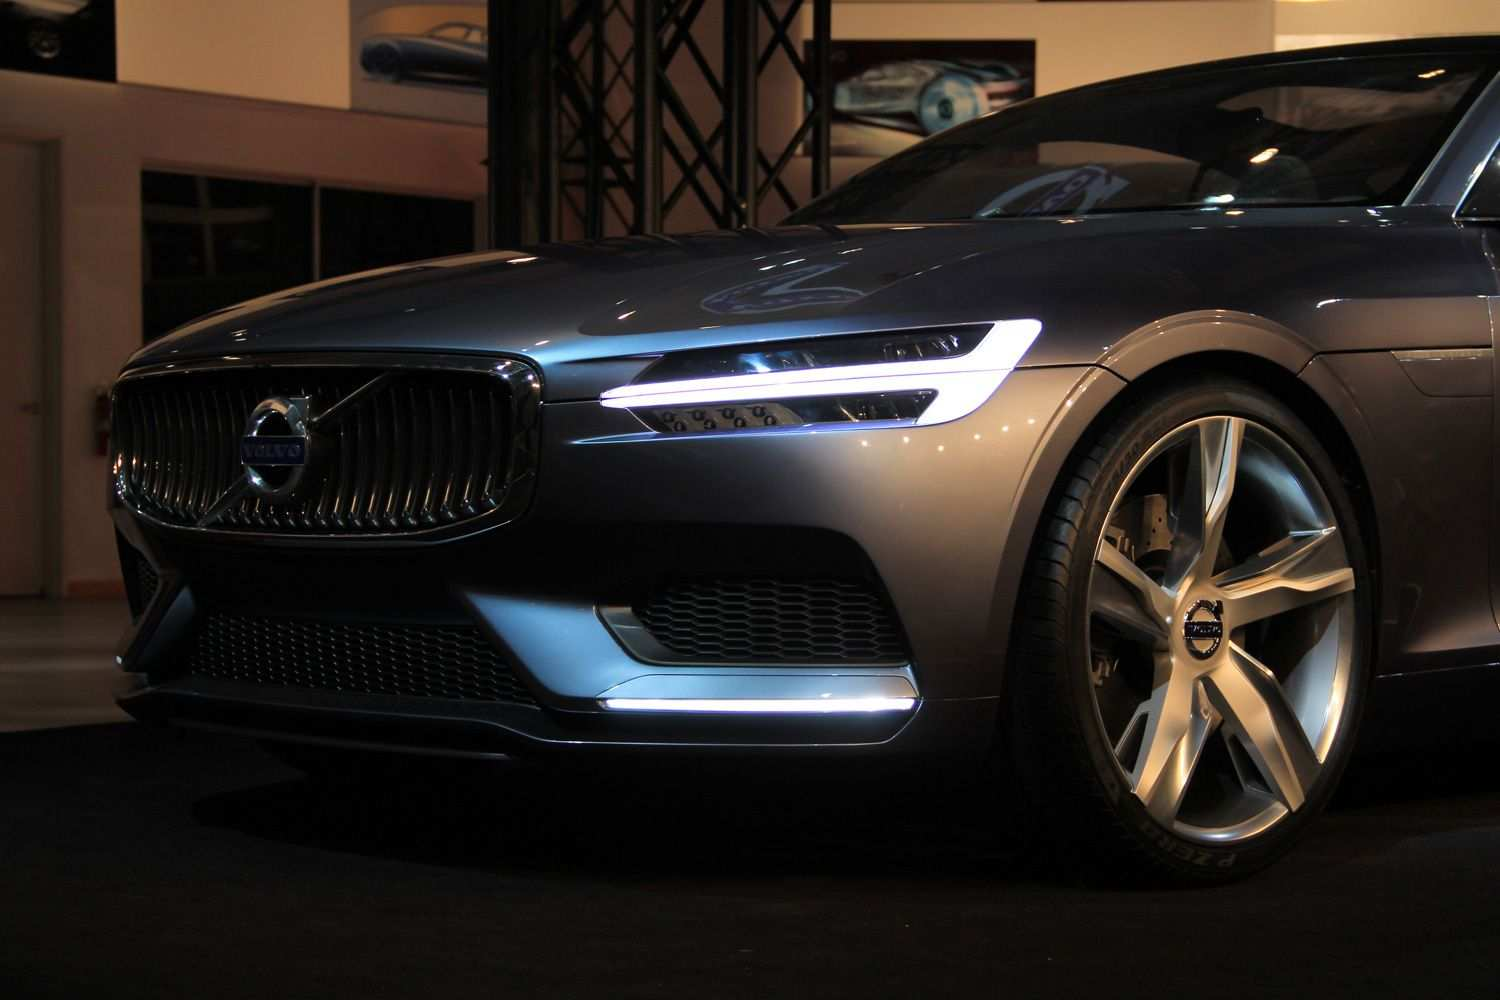 31 Gallery of Volvo 2020 Car Prices with Volvo 2020 Car